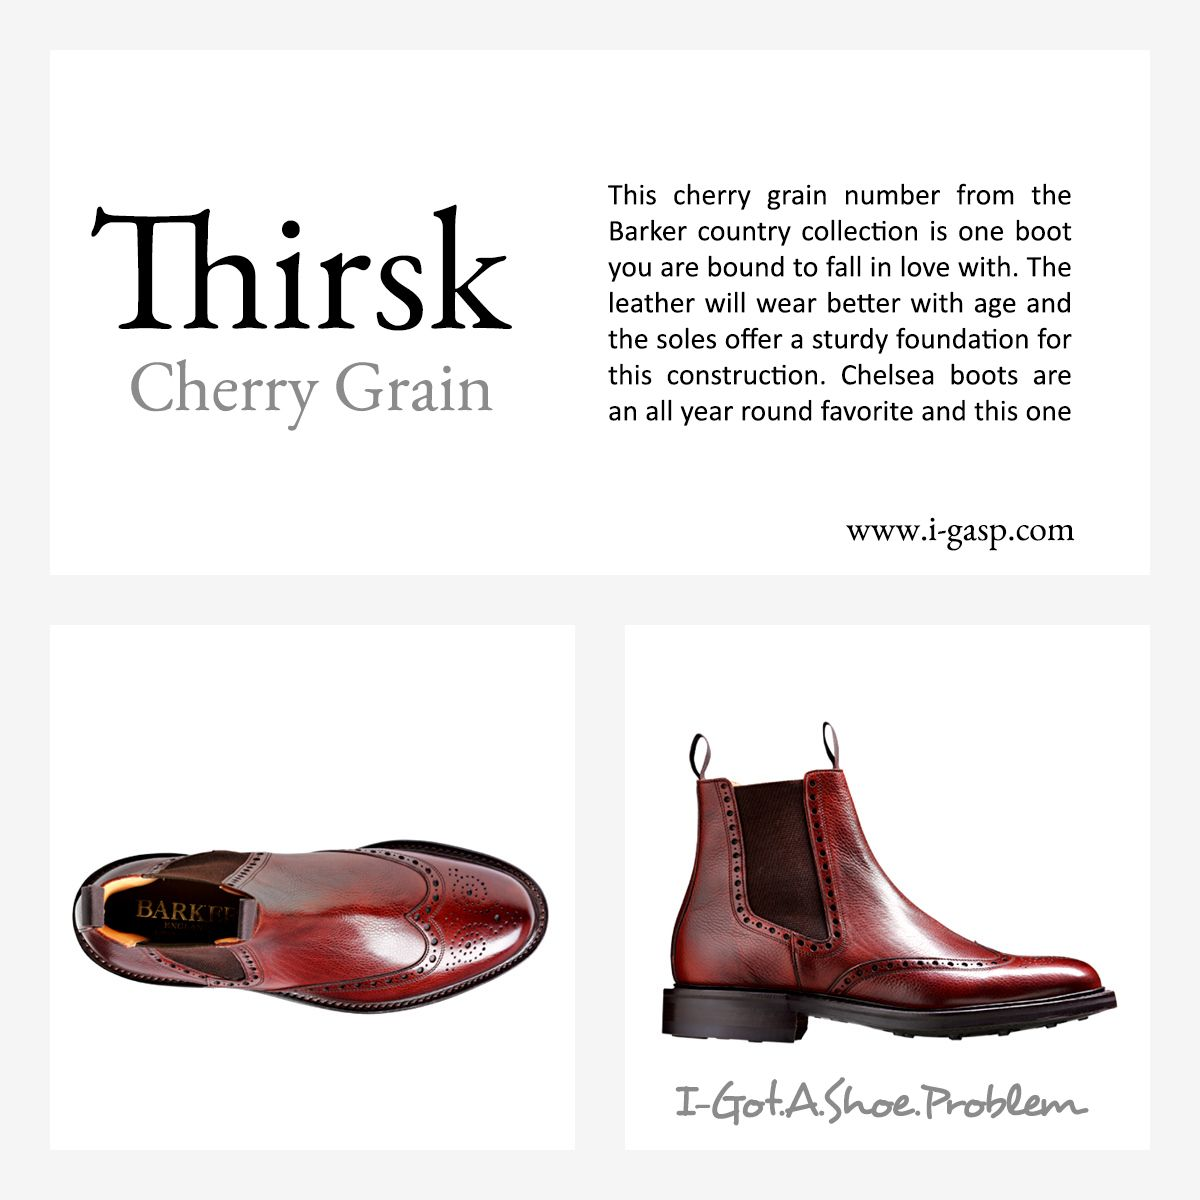 a588a61c This cherry grain number from the Barker country collection is one boot you  are bound to